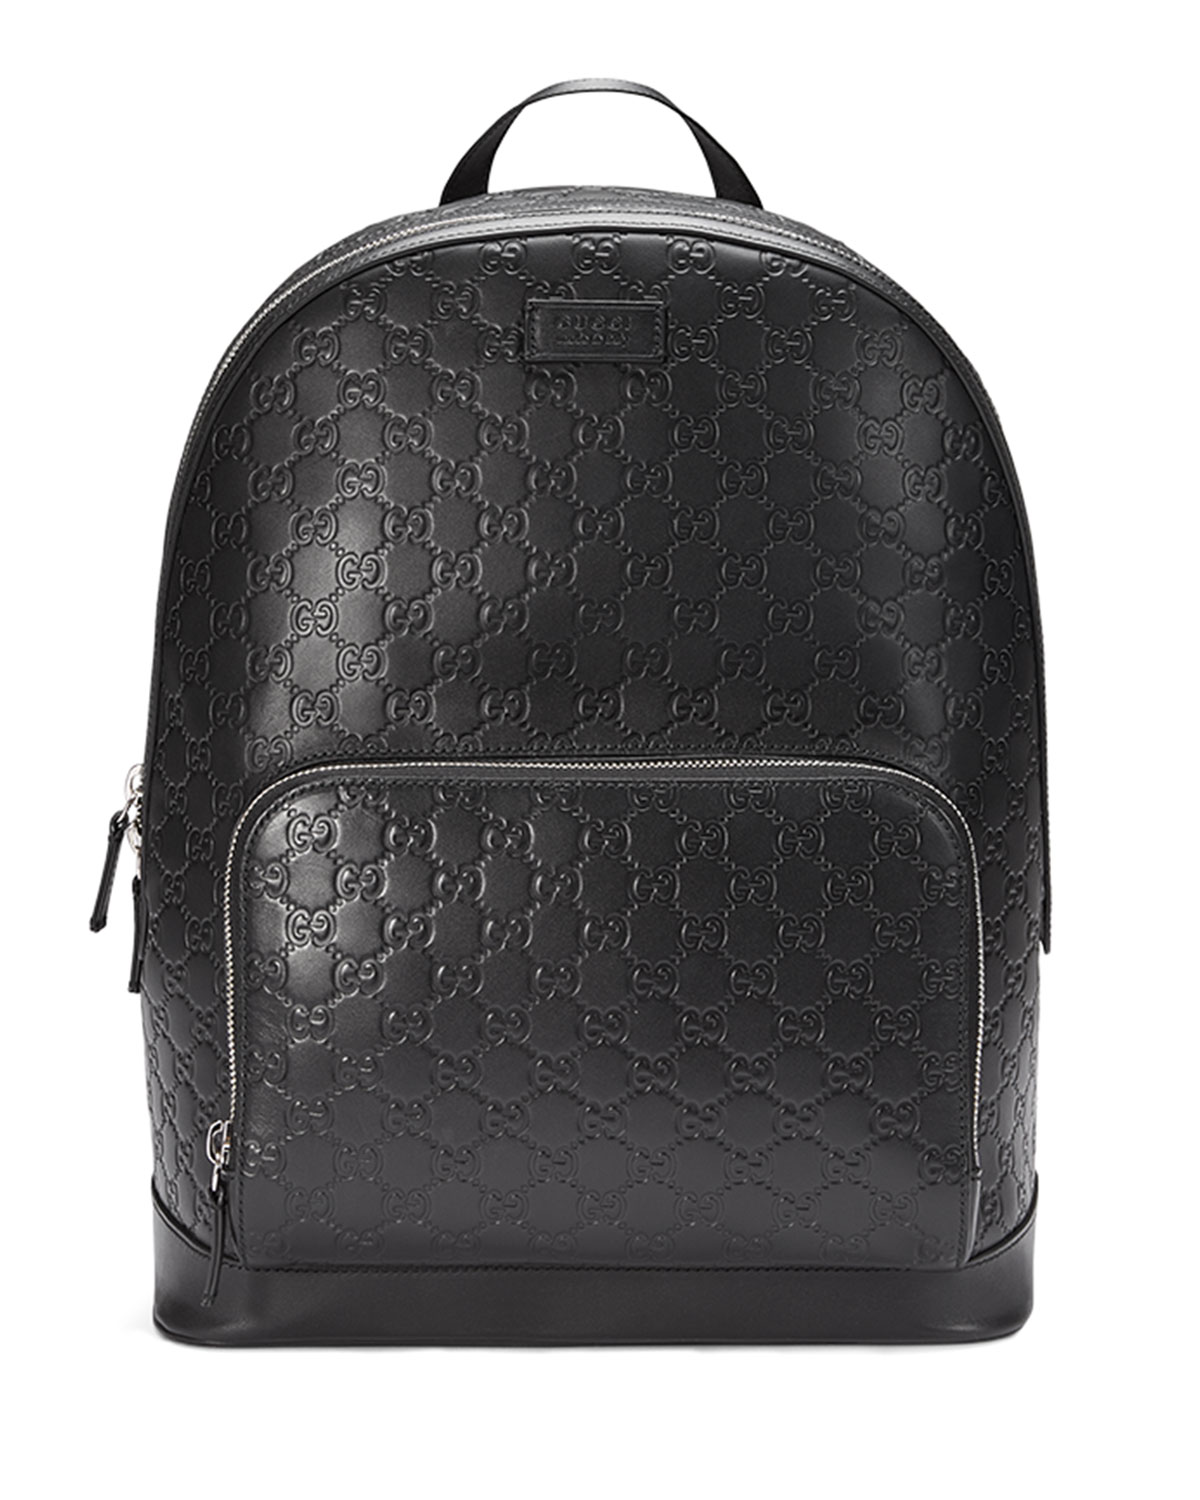 Gucci Signature Leather Backpack 61775a46f703c